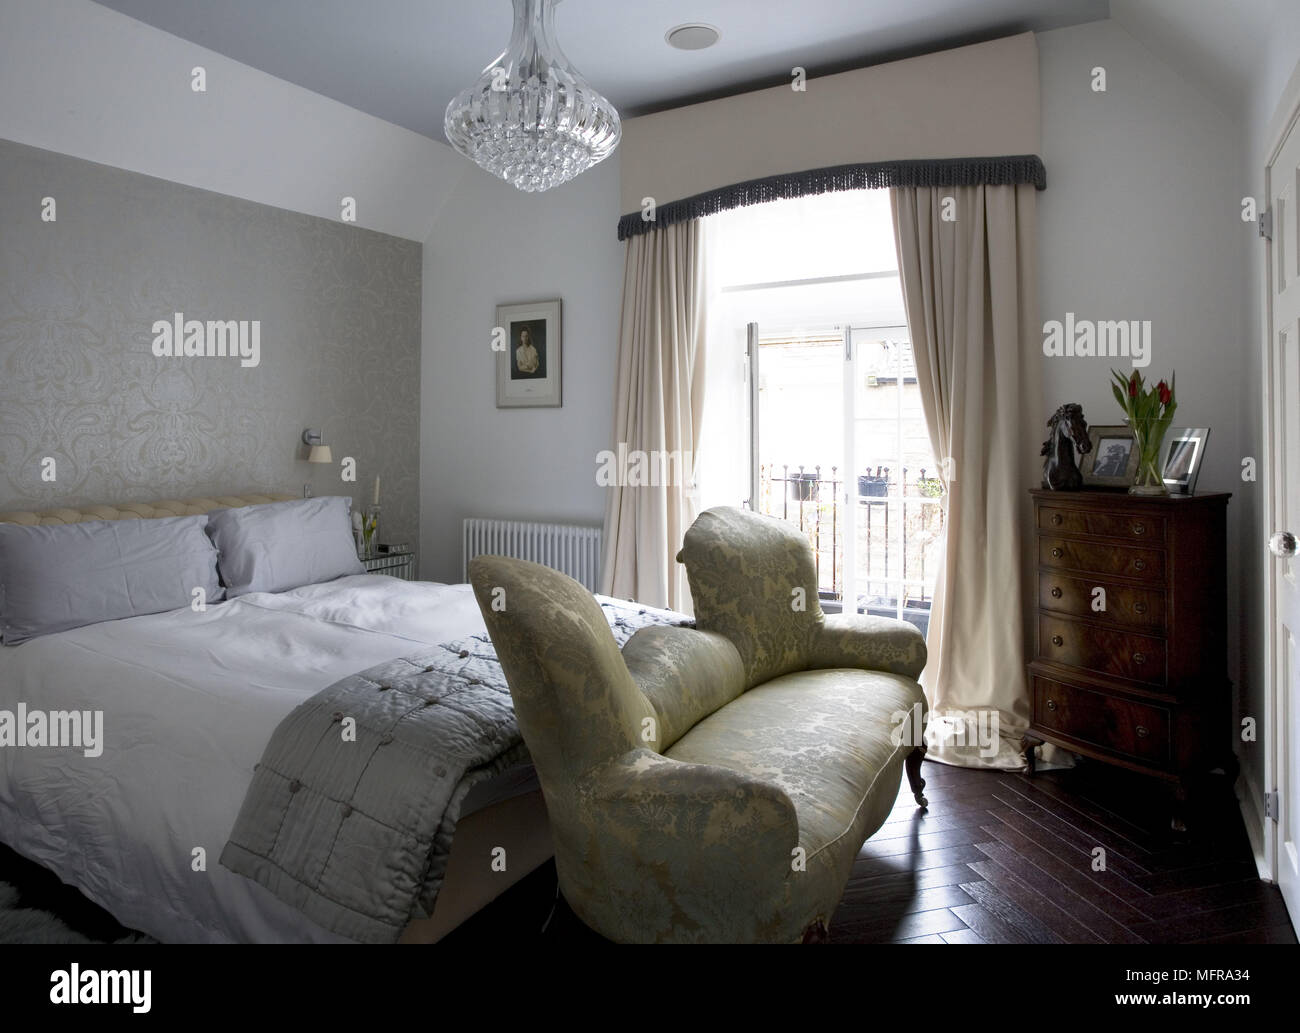 Period Style Sofa At Foot Of Double Bed In Traditional Style Bedroom Stock Photo Alamy